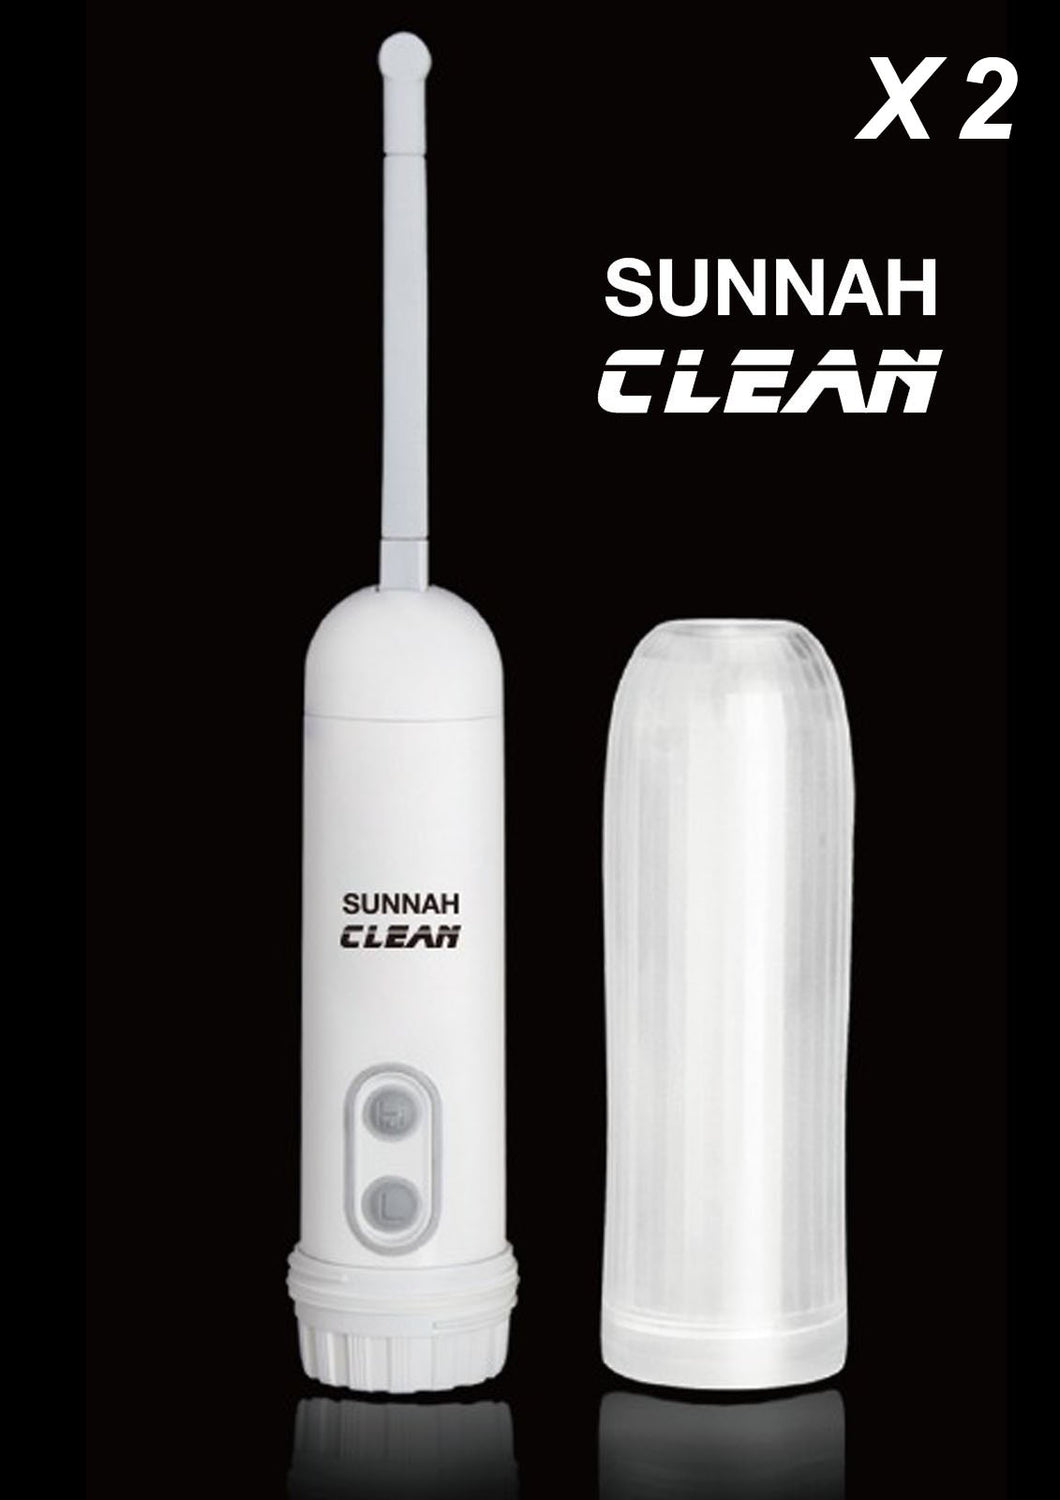 X2 SUNNAH CLEAN DEVICE BUNDLE ! 24HR SALE